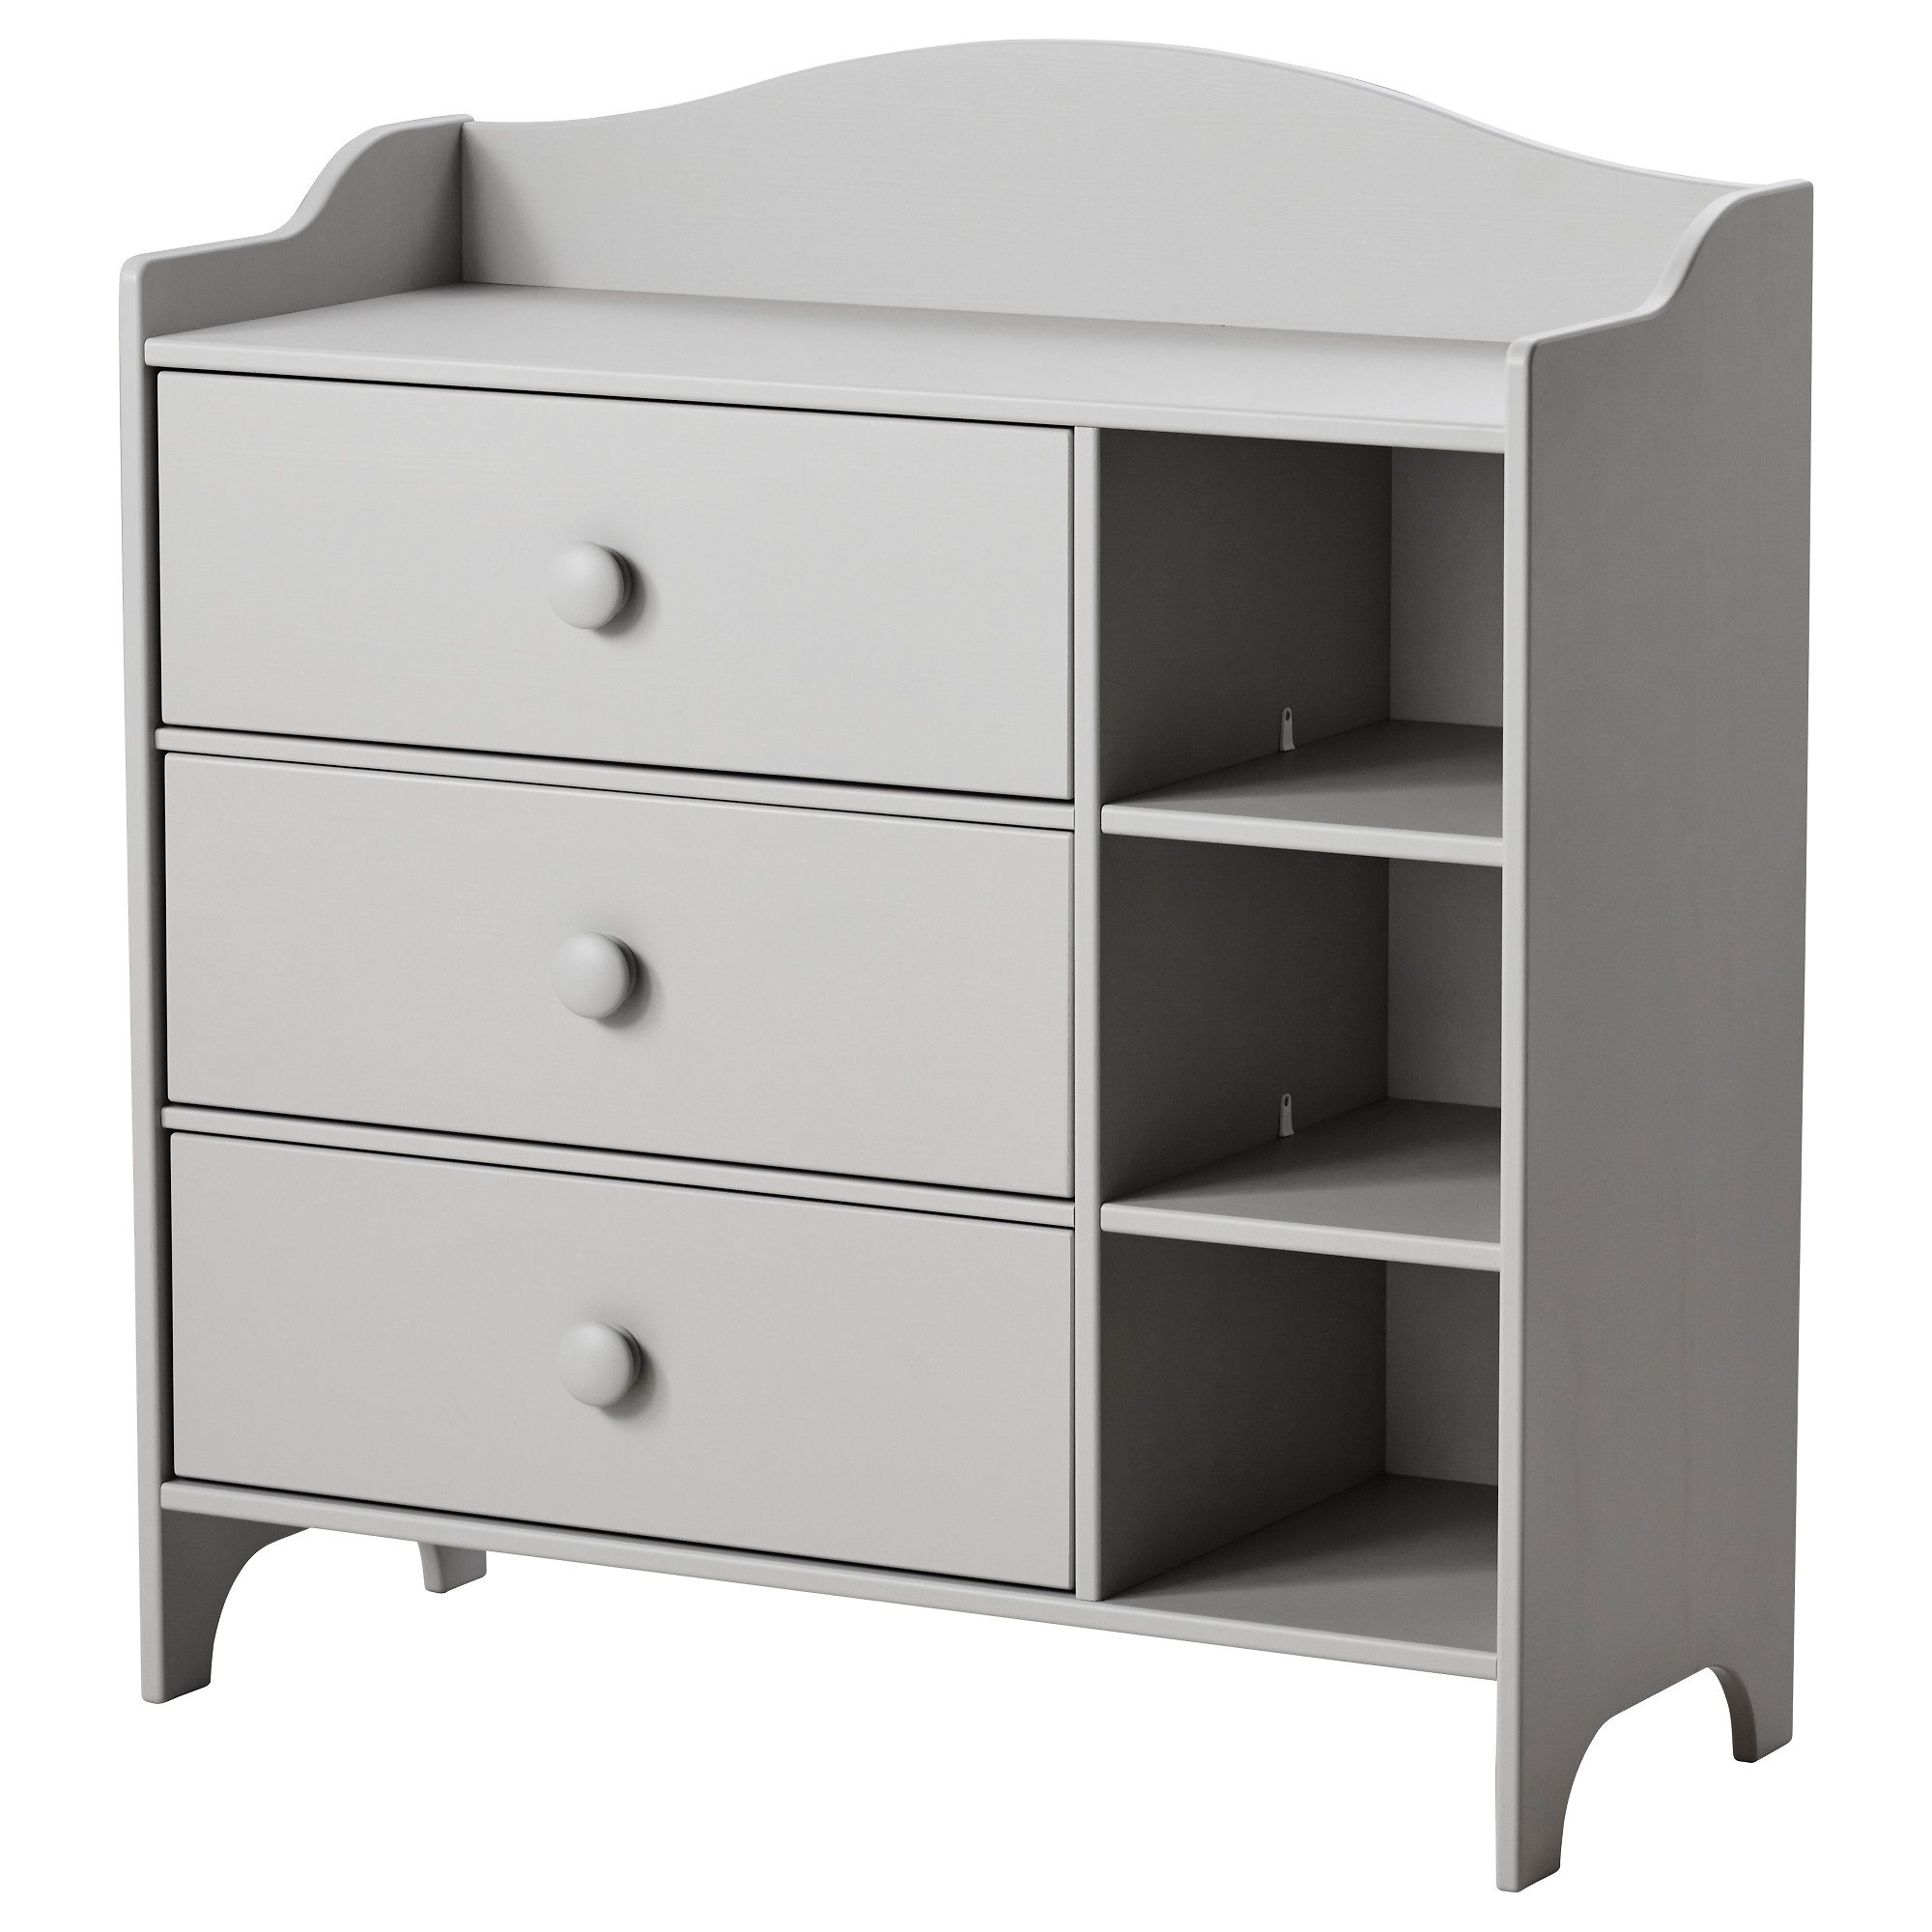 Trogen commode   ikea